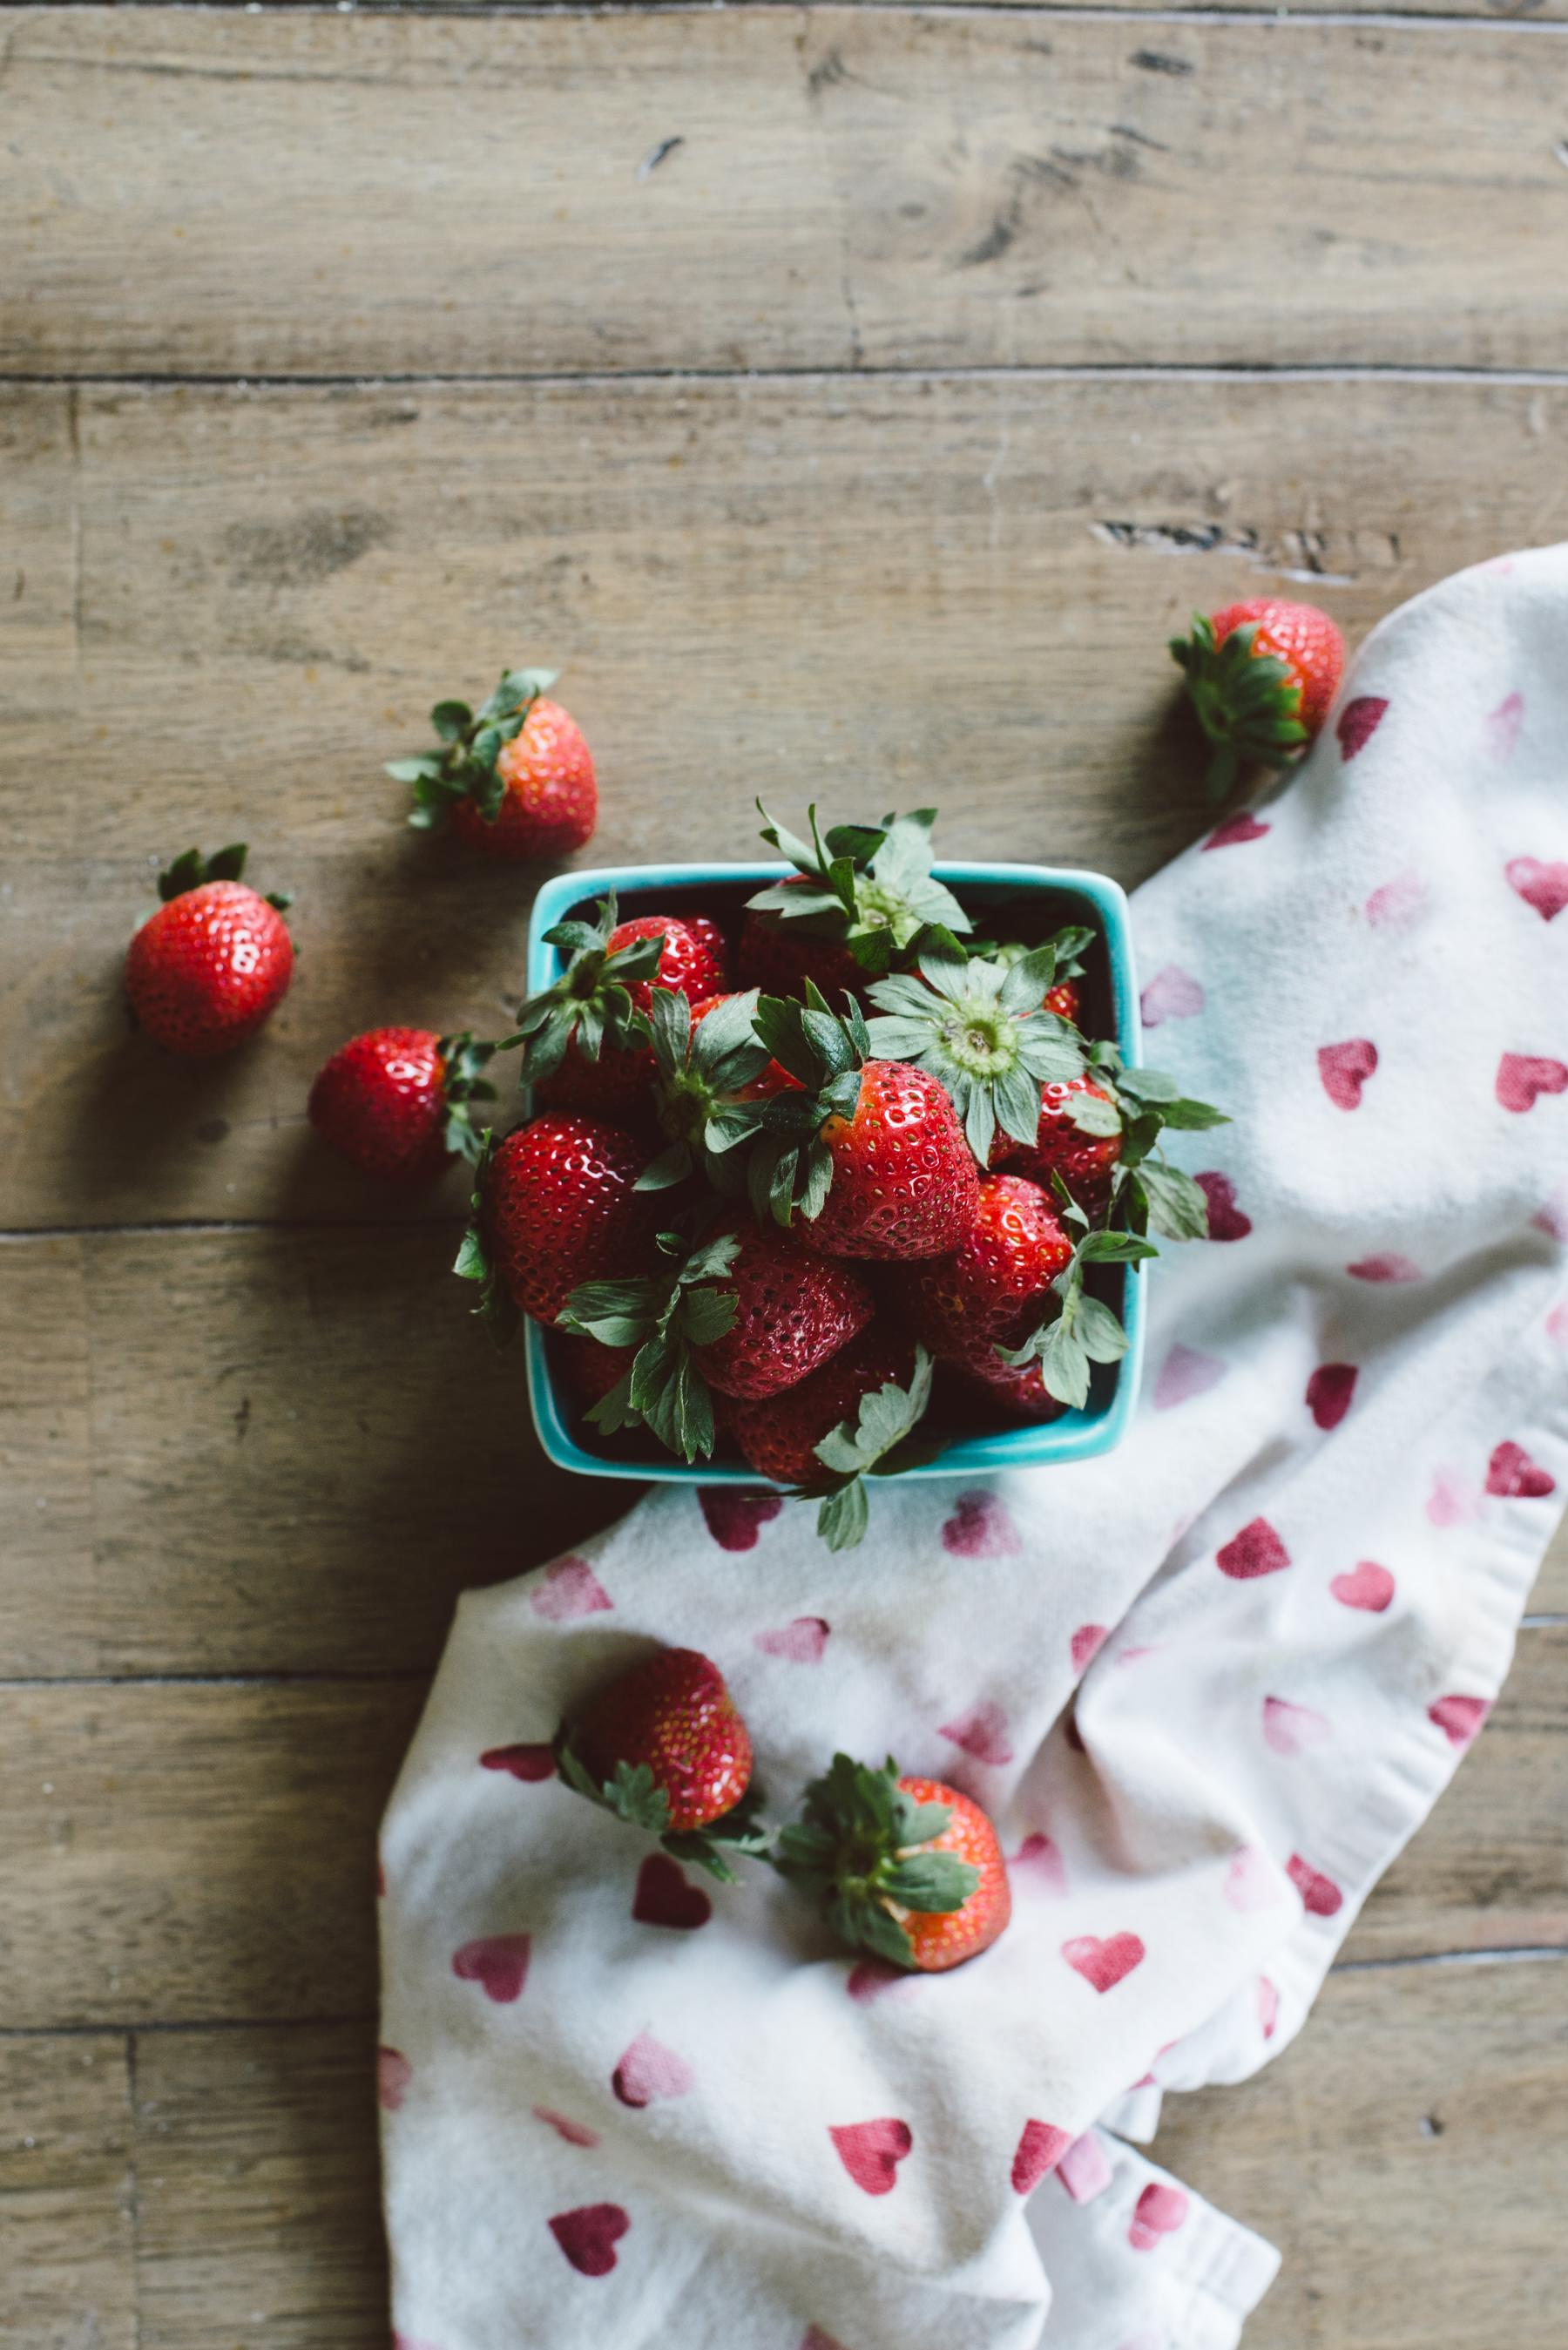 strawberries vancouver nutritionist jennifer brott.jpg